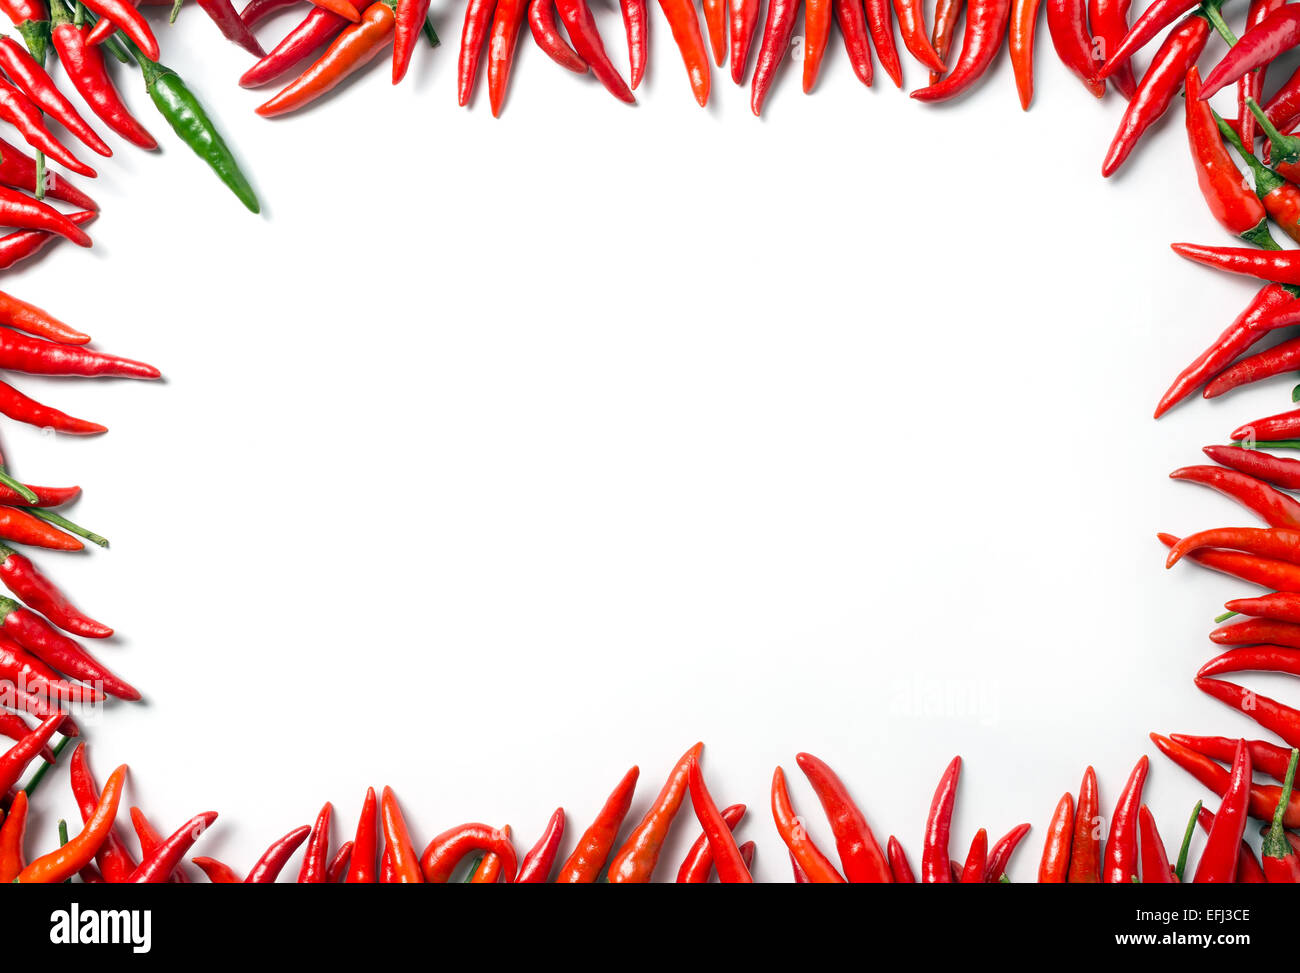 Frame of mini red hot chillies - isolated on white background Stock Photo